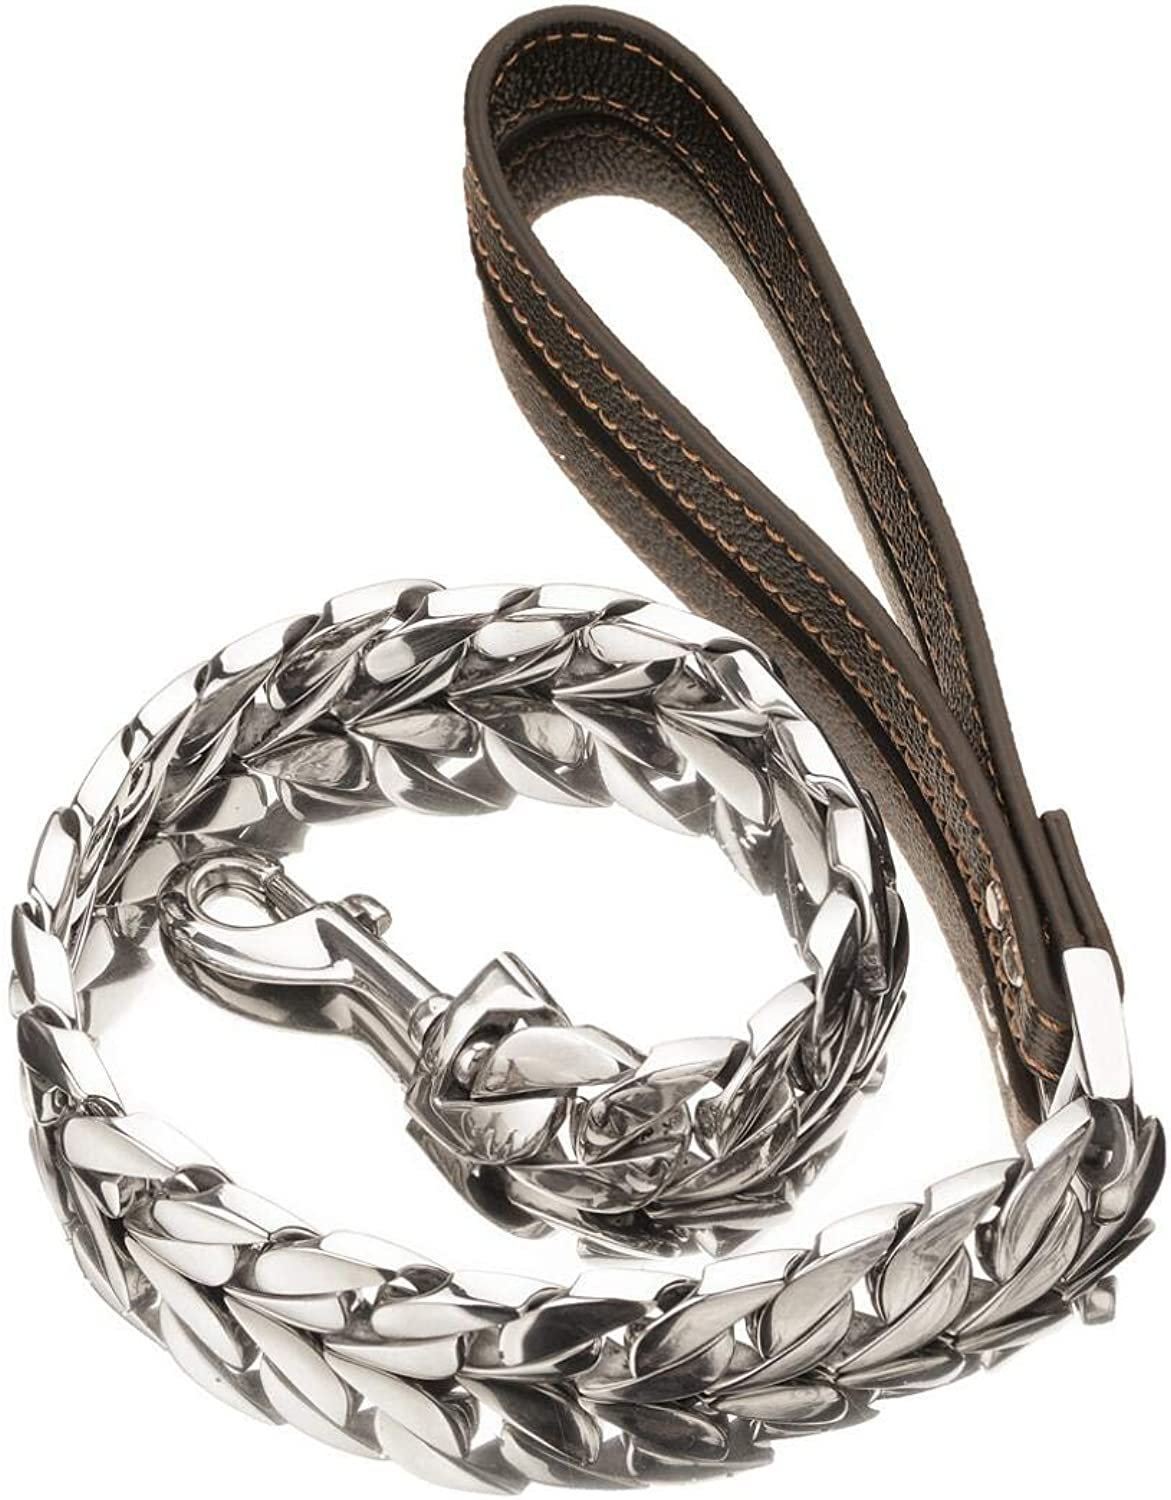 30Mm Dog Chain Titanium Steel Stainless Steel HighGrade Polished Casting Thick Chain Large Pet Dog Leash